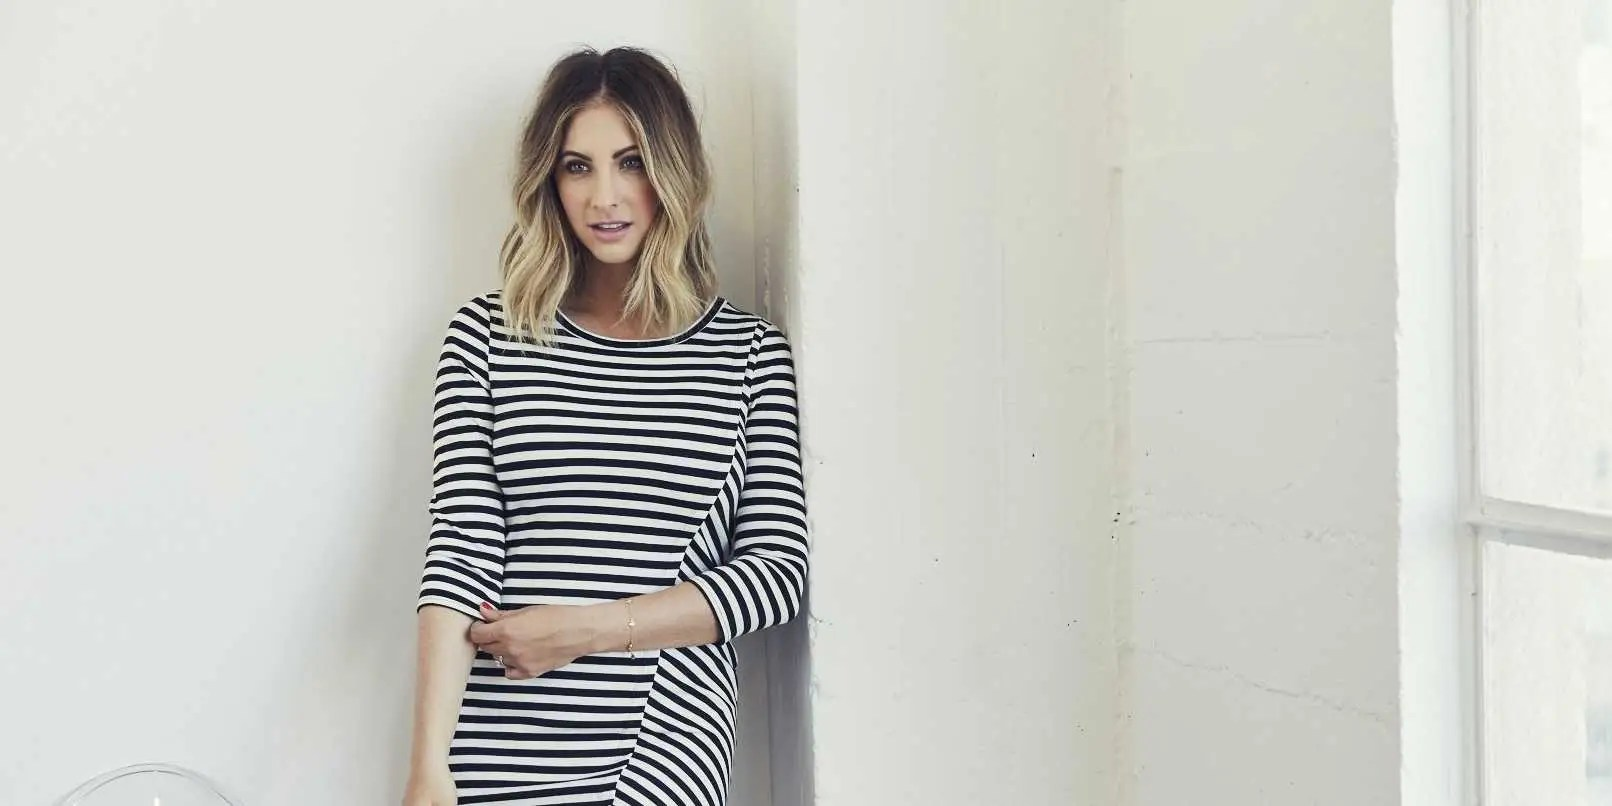 Bloggers Are Influencing Fashion Brands